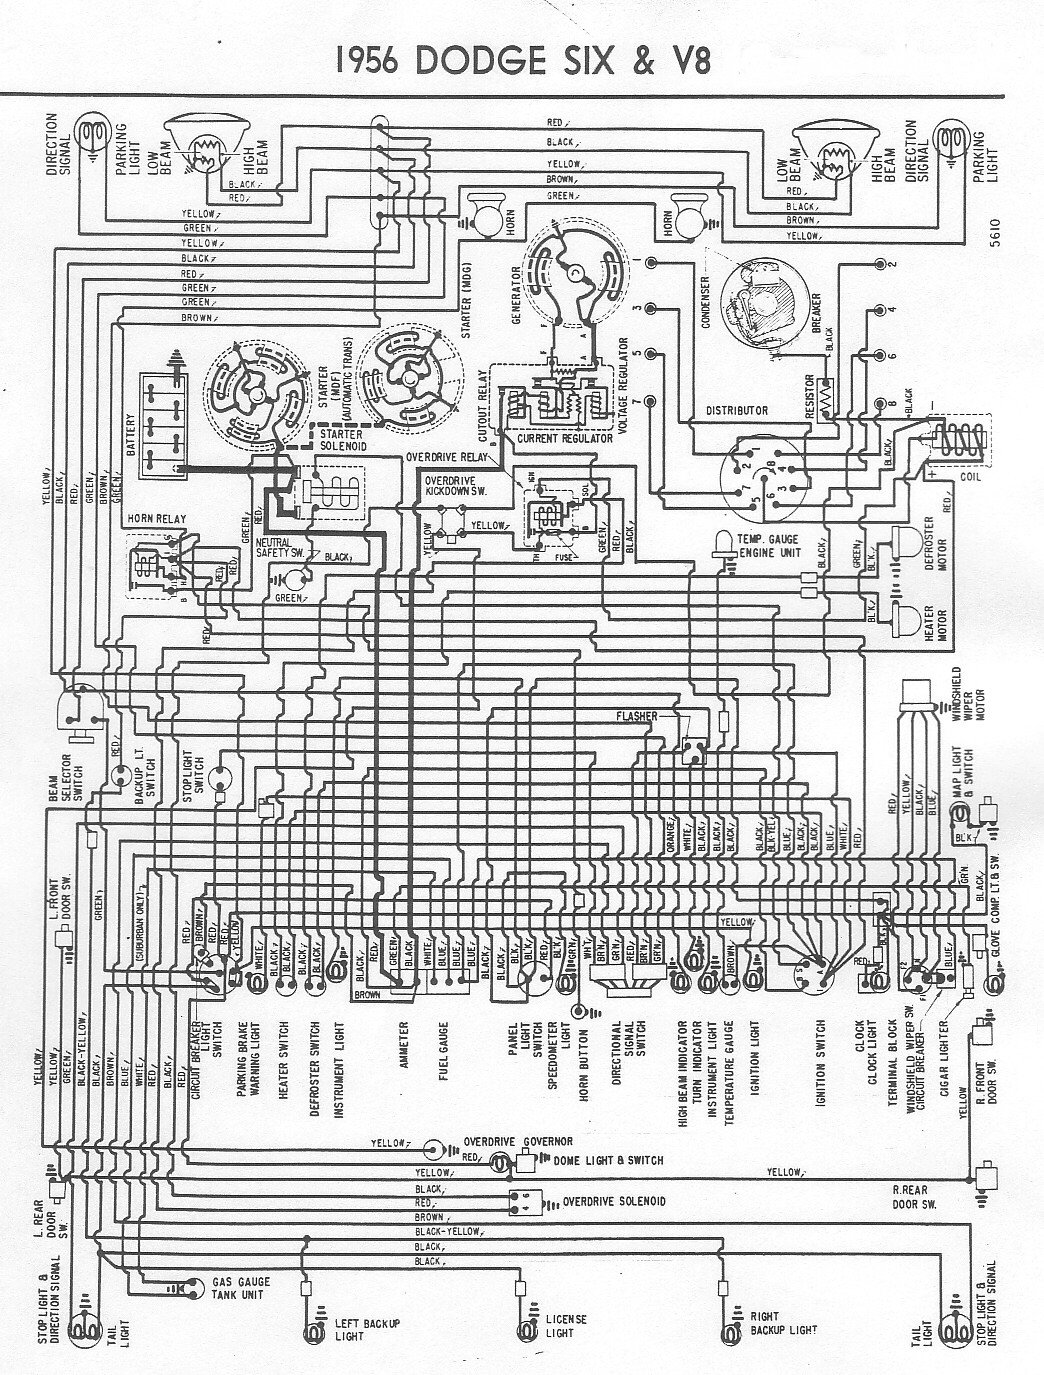 dodge pickup wiring diagram, 1956 dodge truck radiator, 05 dodge truck tail light diagram, 1956 dodge truck engine, 1956 dodge truck fuel tank, 73 dodge charger wiring diagram, 1956 dodge truck parts, 1956 dodge truck dimensions, 1956 dodge truck chassis, 1956 dodge truck water pump, 1948 chevrolet wiring diagram, pickup truck diagram, 1956 dodge truck door, on 1956 dodge truck wiring diagram